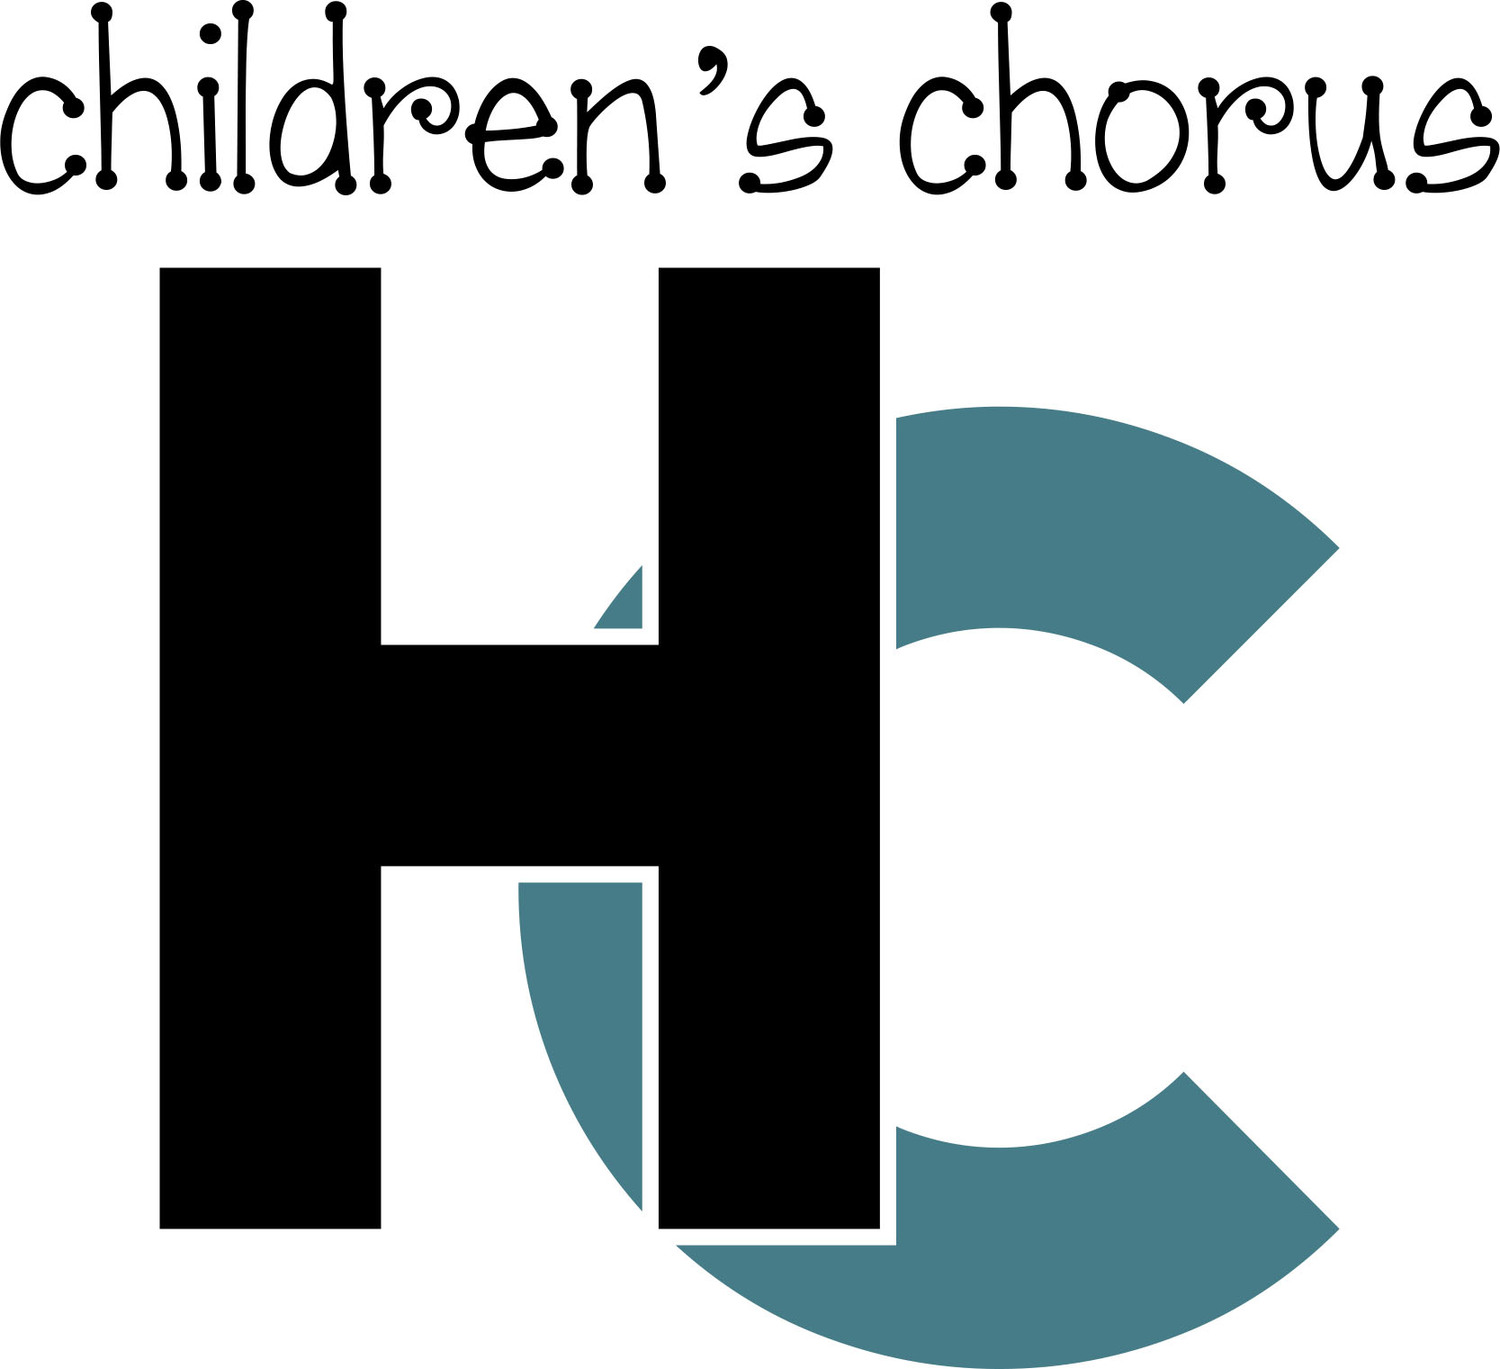 HOCKING COUNTY CHILDREN'S CHORUS